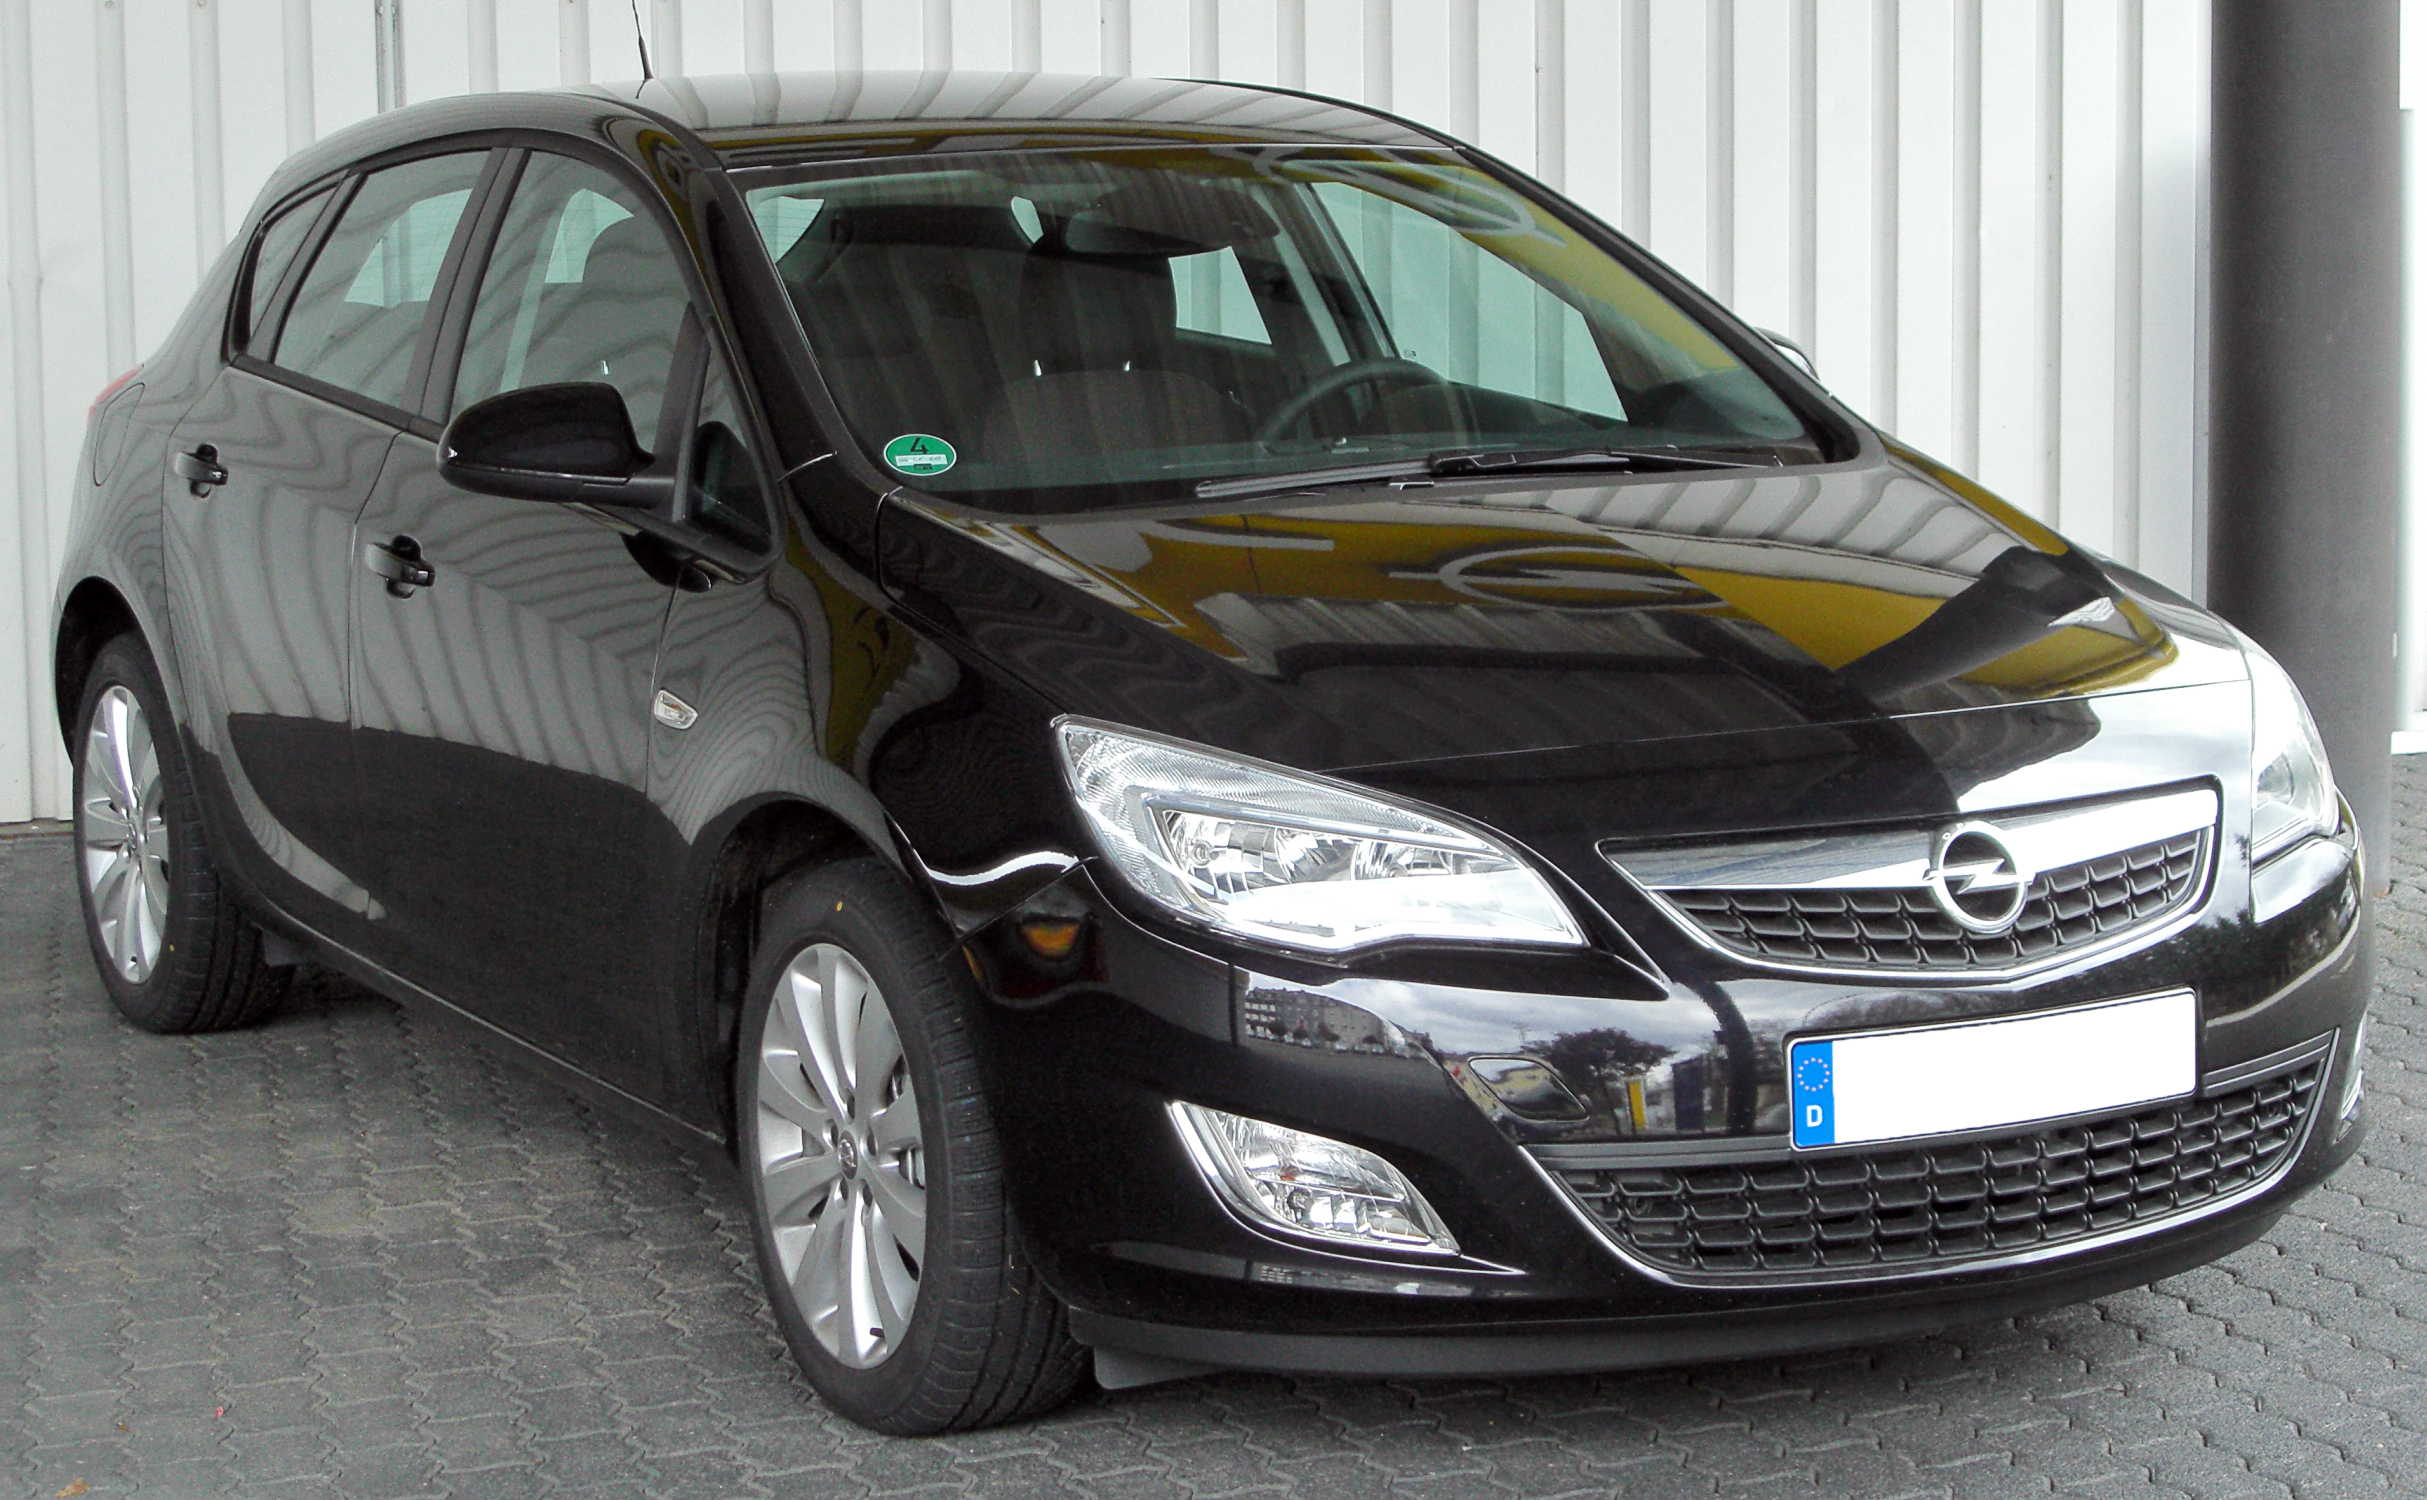 opel astra 2010 review amazing pictures and images look at the car. Black Bedroom Furniture Sets. Home Design Ideas